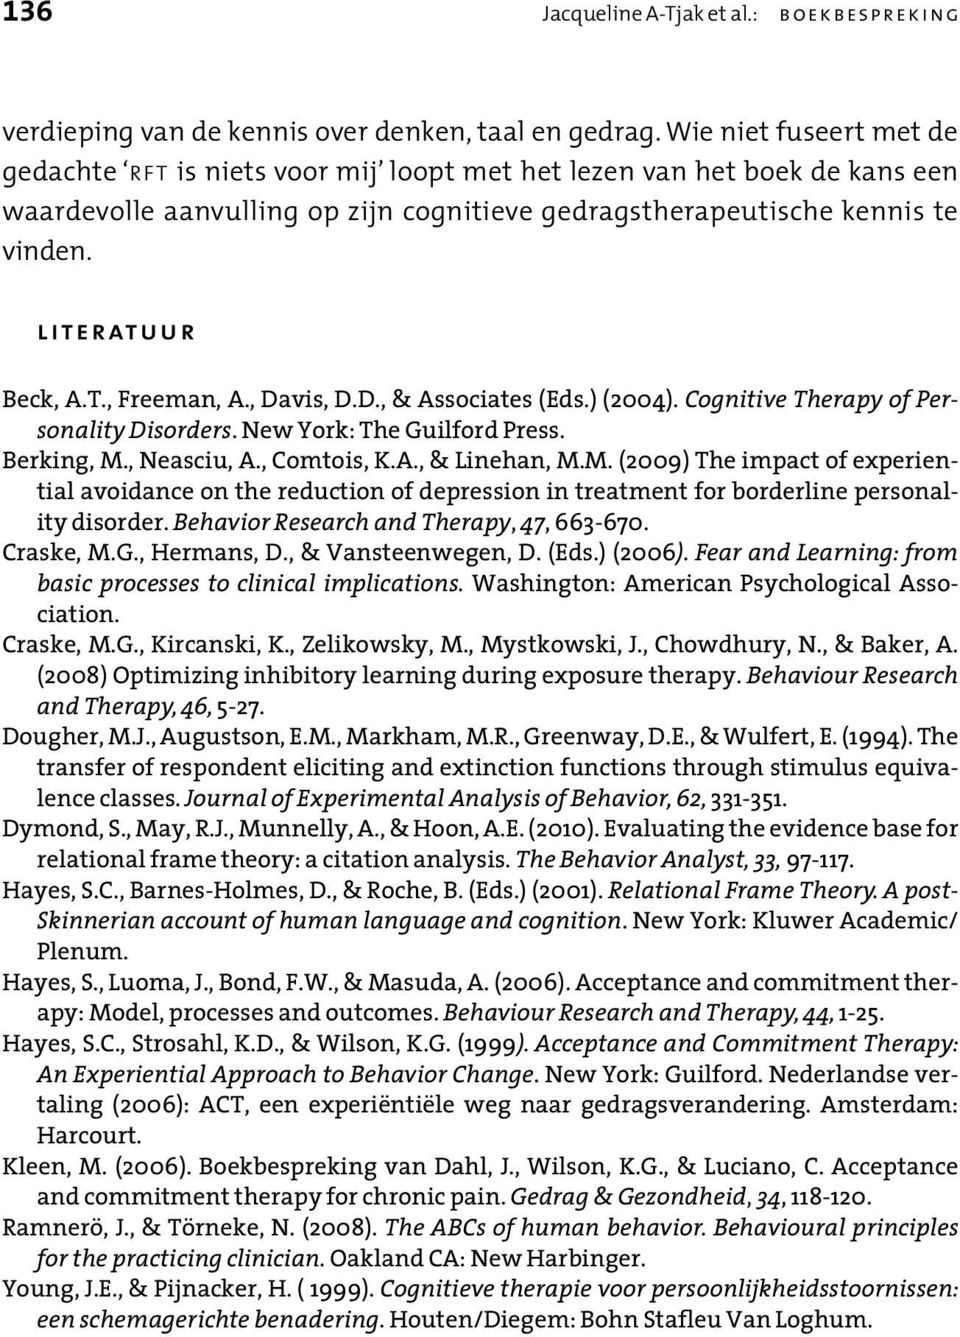 literatuur Beck, A.T., Freeman, A., Davis, D.D., & Associates (Eds.) (2004). Cognitive Therapy of Personality Disorders. New York: The Guilford Press. Berking, M., Neasciu, A., Comtois, K.A., & Linehan, M.